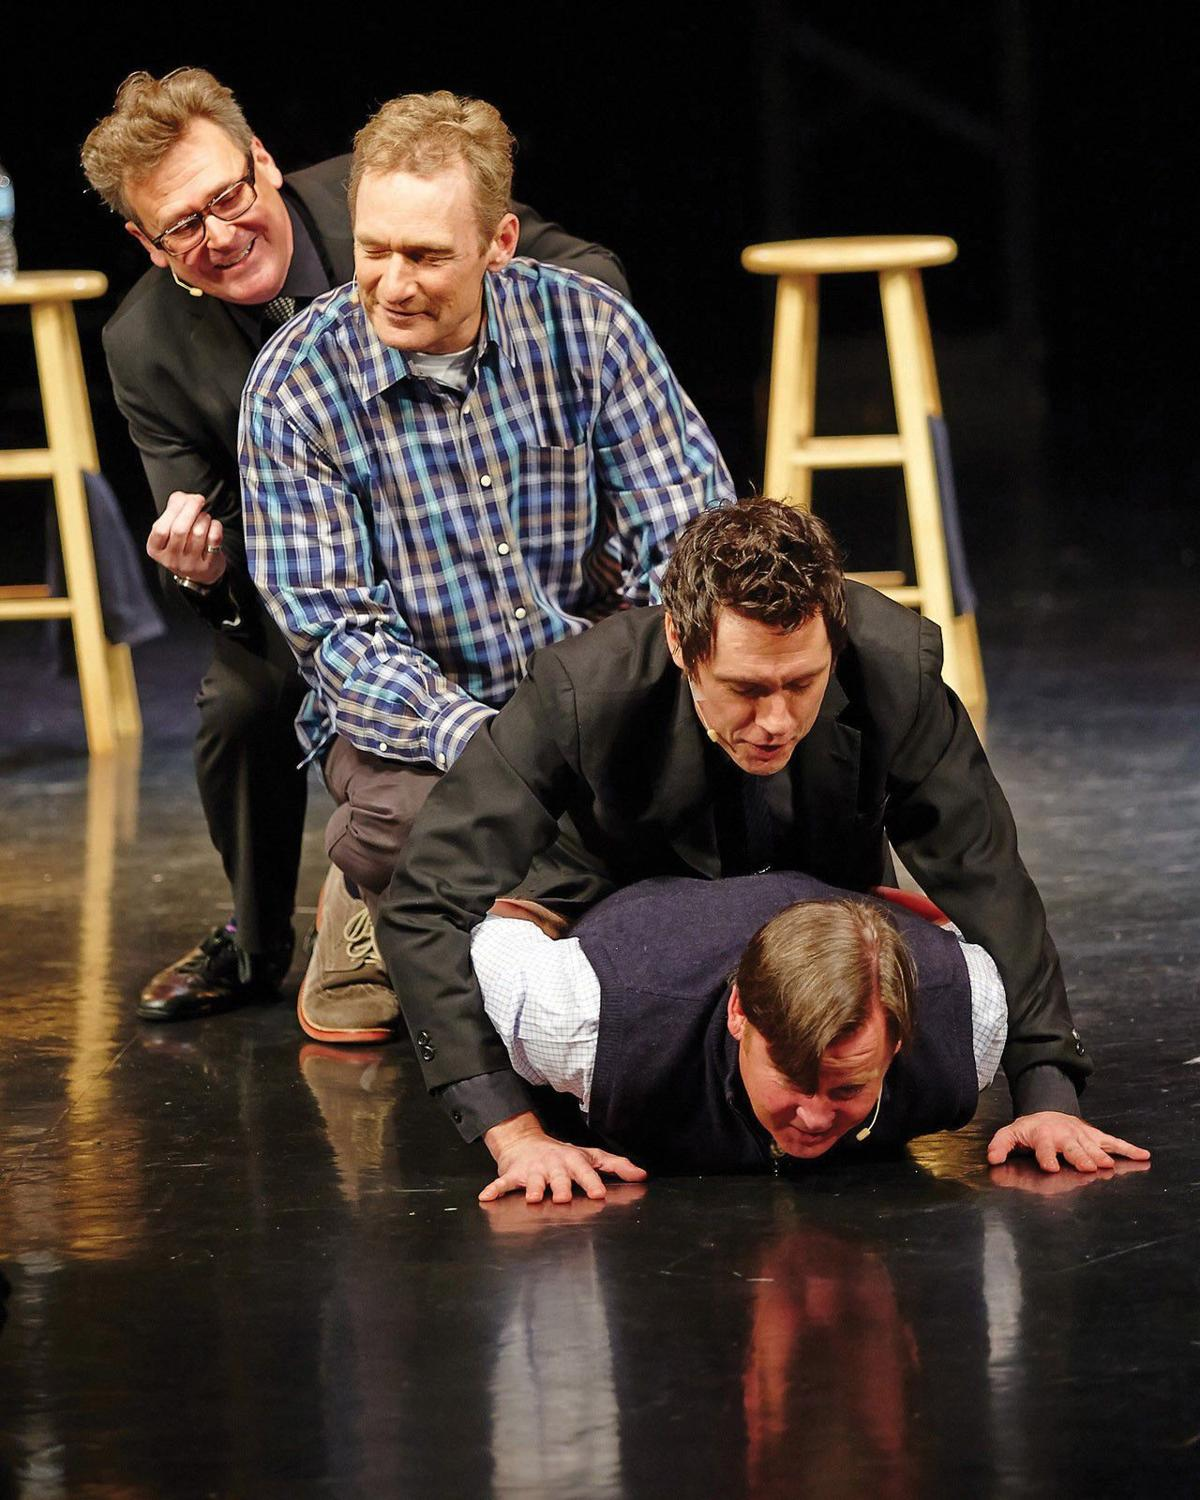 'Whose Live Anyway?' on stage features same games, comedians as TV version